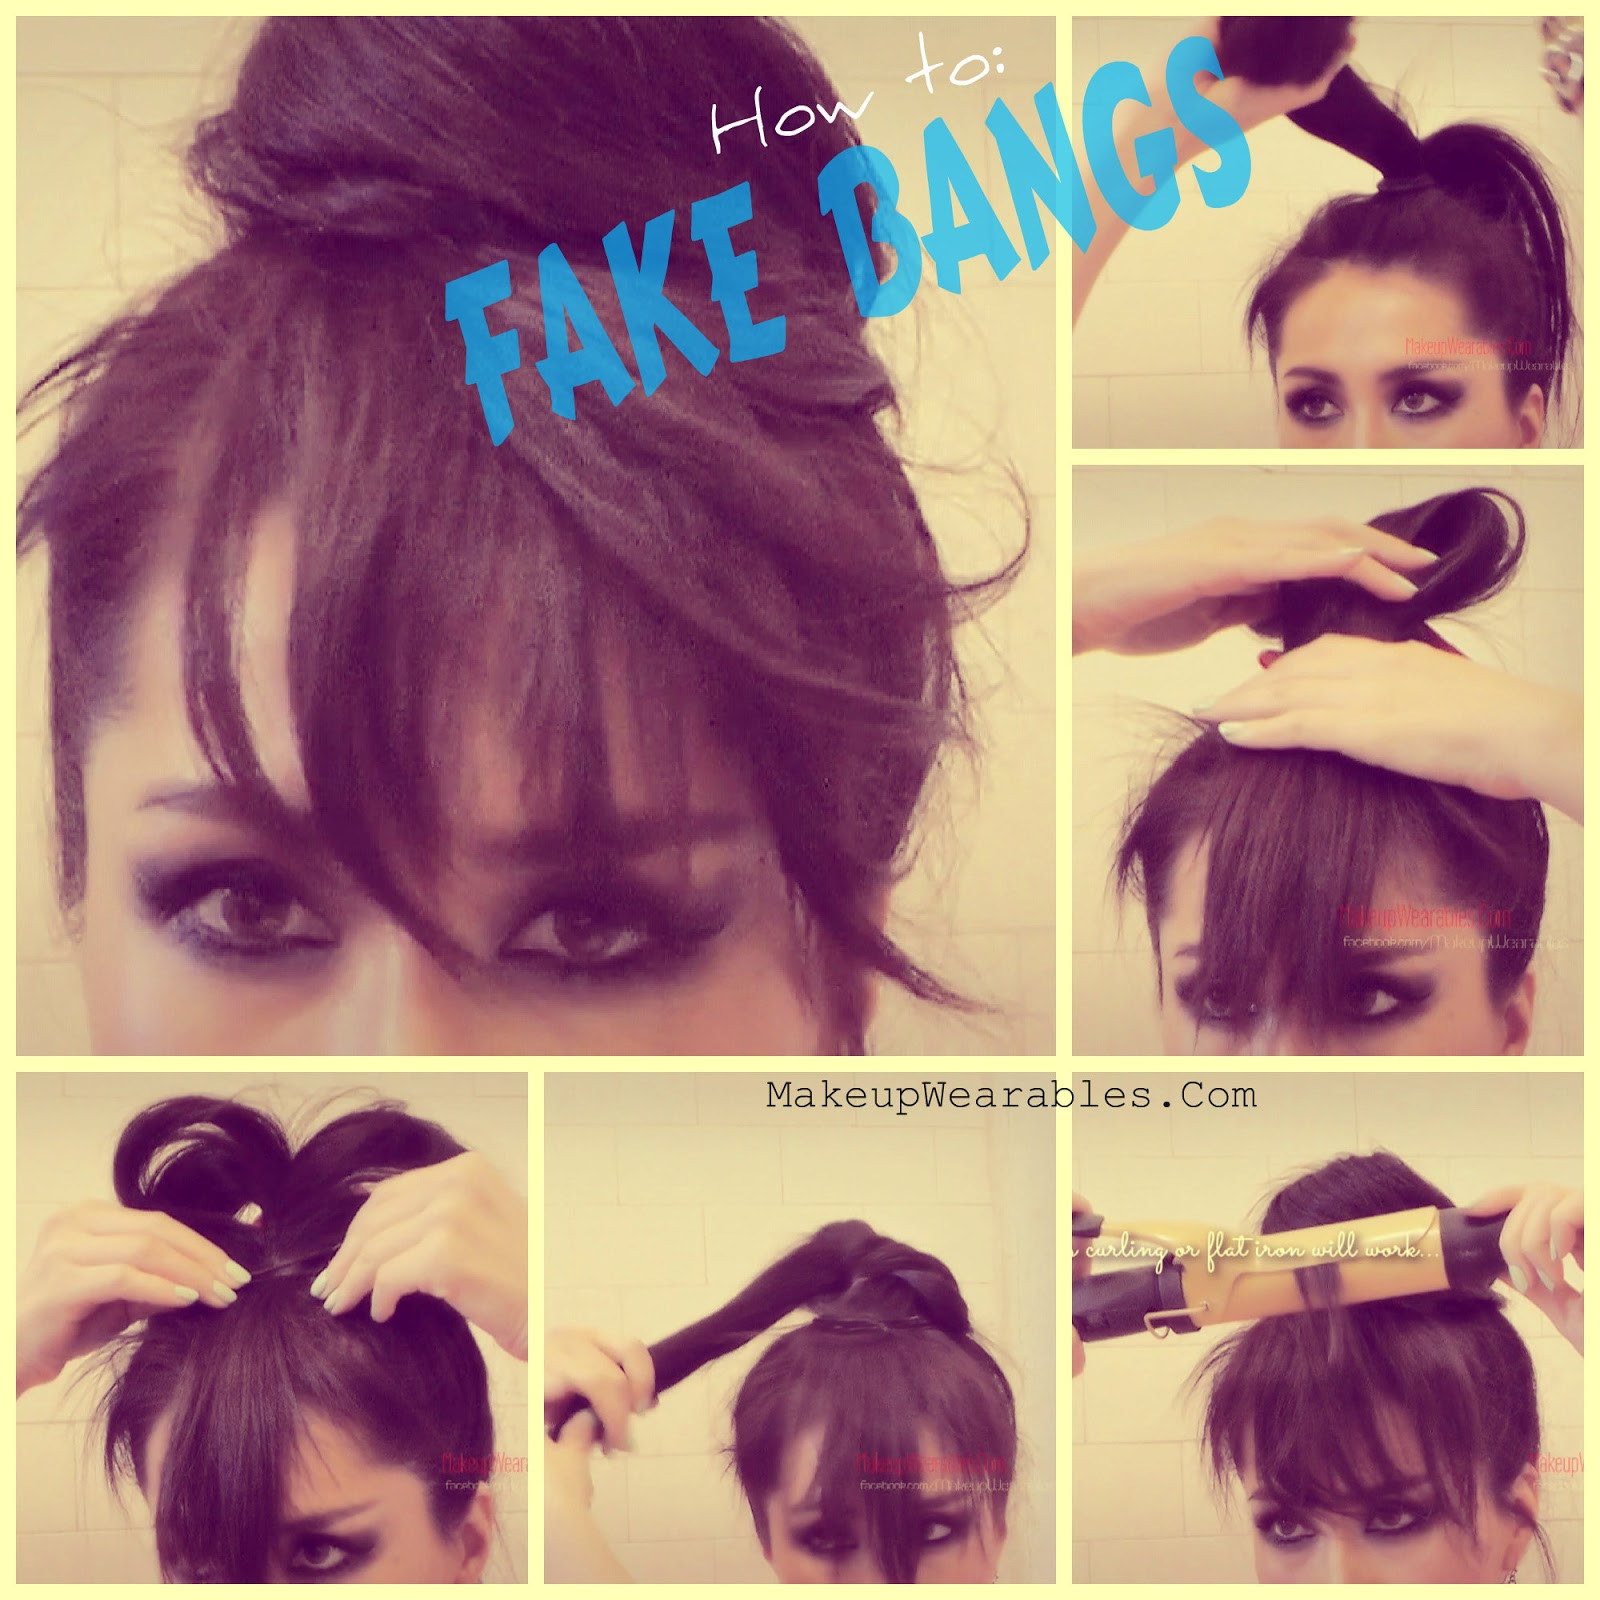 Best ideas about Easy Hairstyle Video . Save or Pin 21 Easy Hairstyles You Can Wear To Work Now.